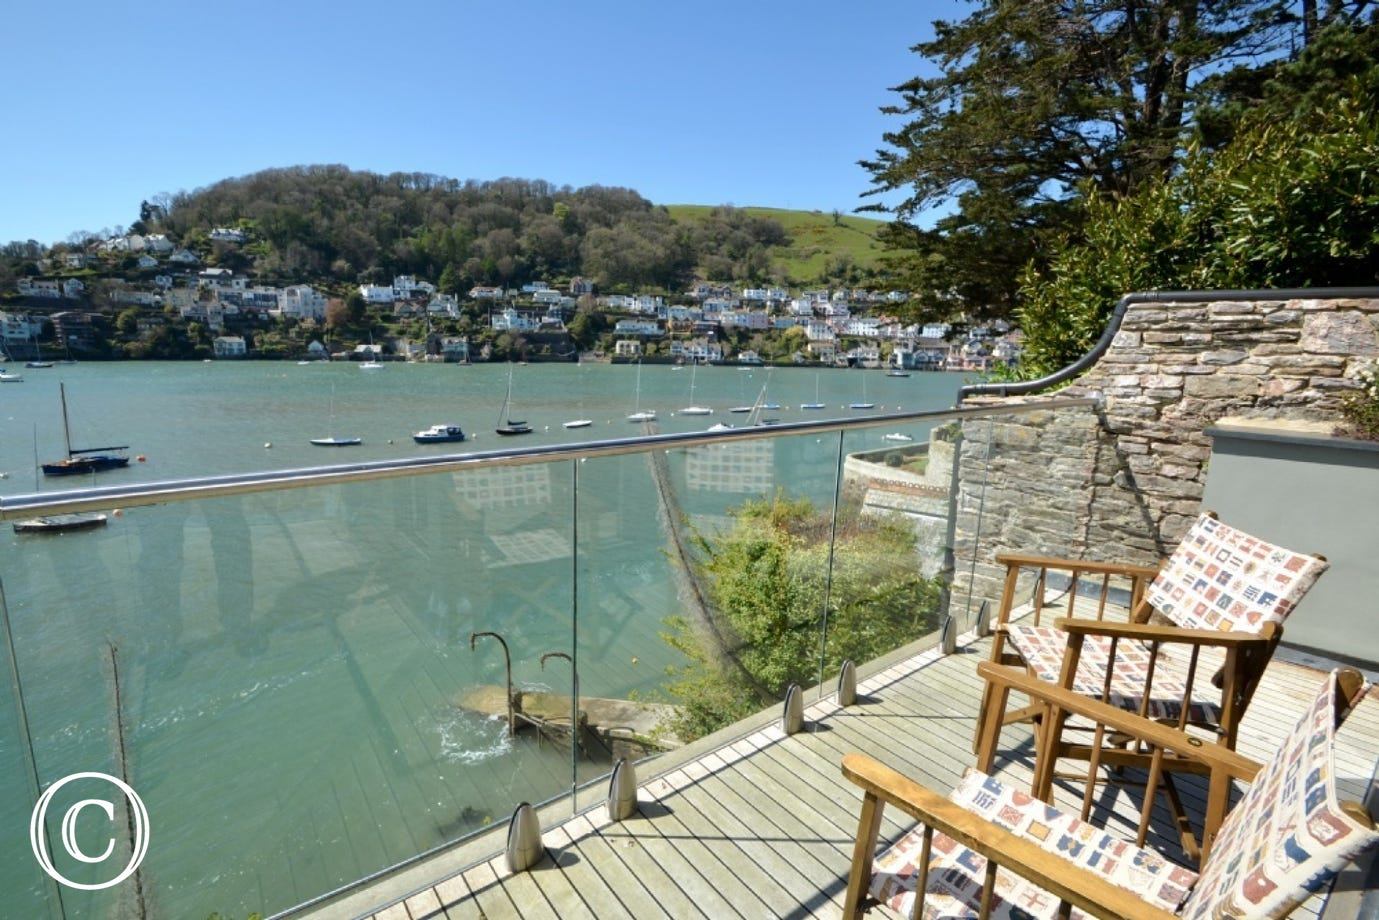 Sun loungers at The Edge in Kingswear